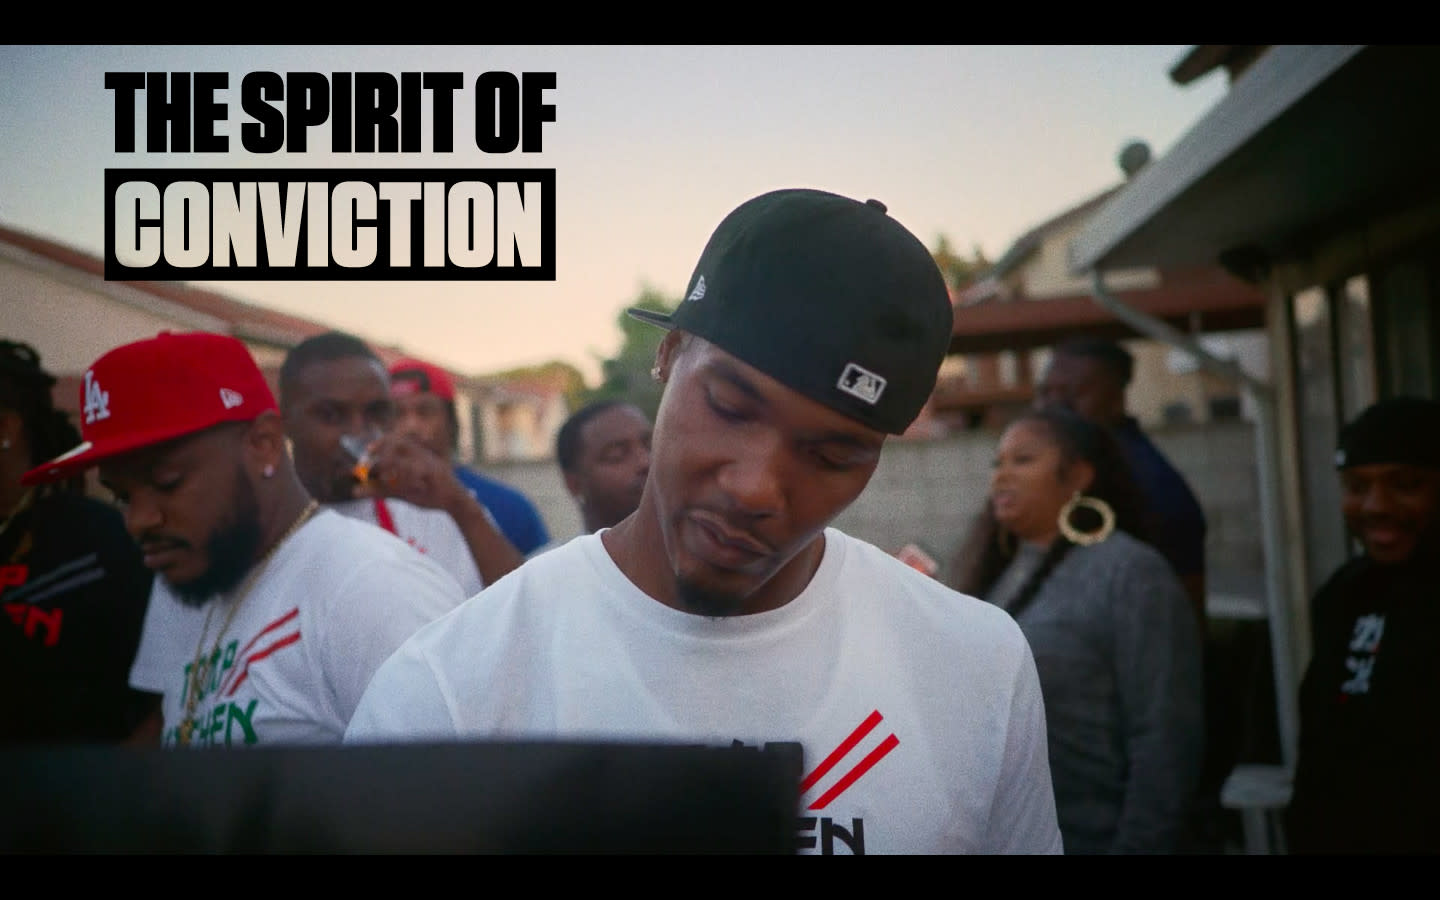 Trap Kitchen Uses Food to Rewrite Compton's Narrative | The Spirit of Conviction